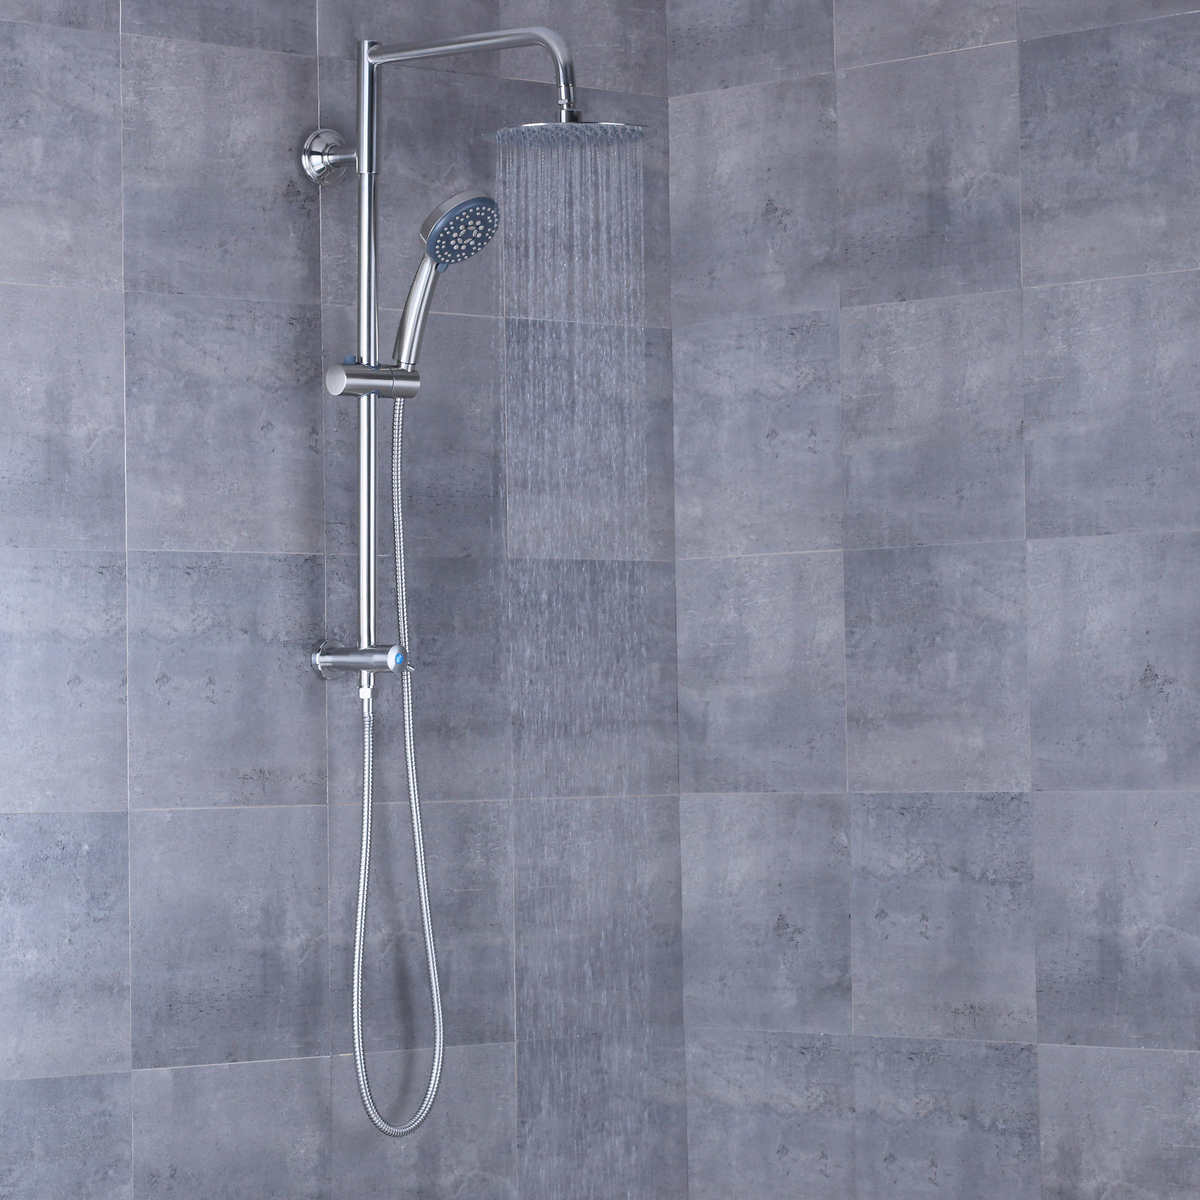 shower head and rain shower combo.  Rain Shower Head and Hand Combo Item 1183729 Click to Zoom AFA Stainless 8